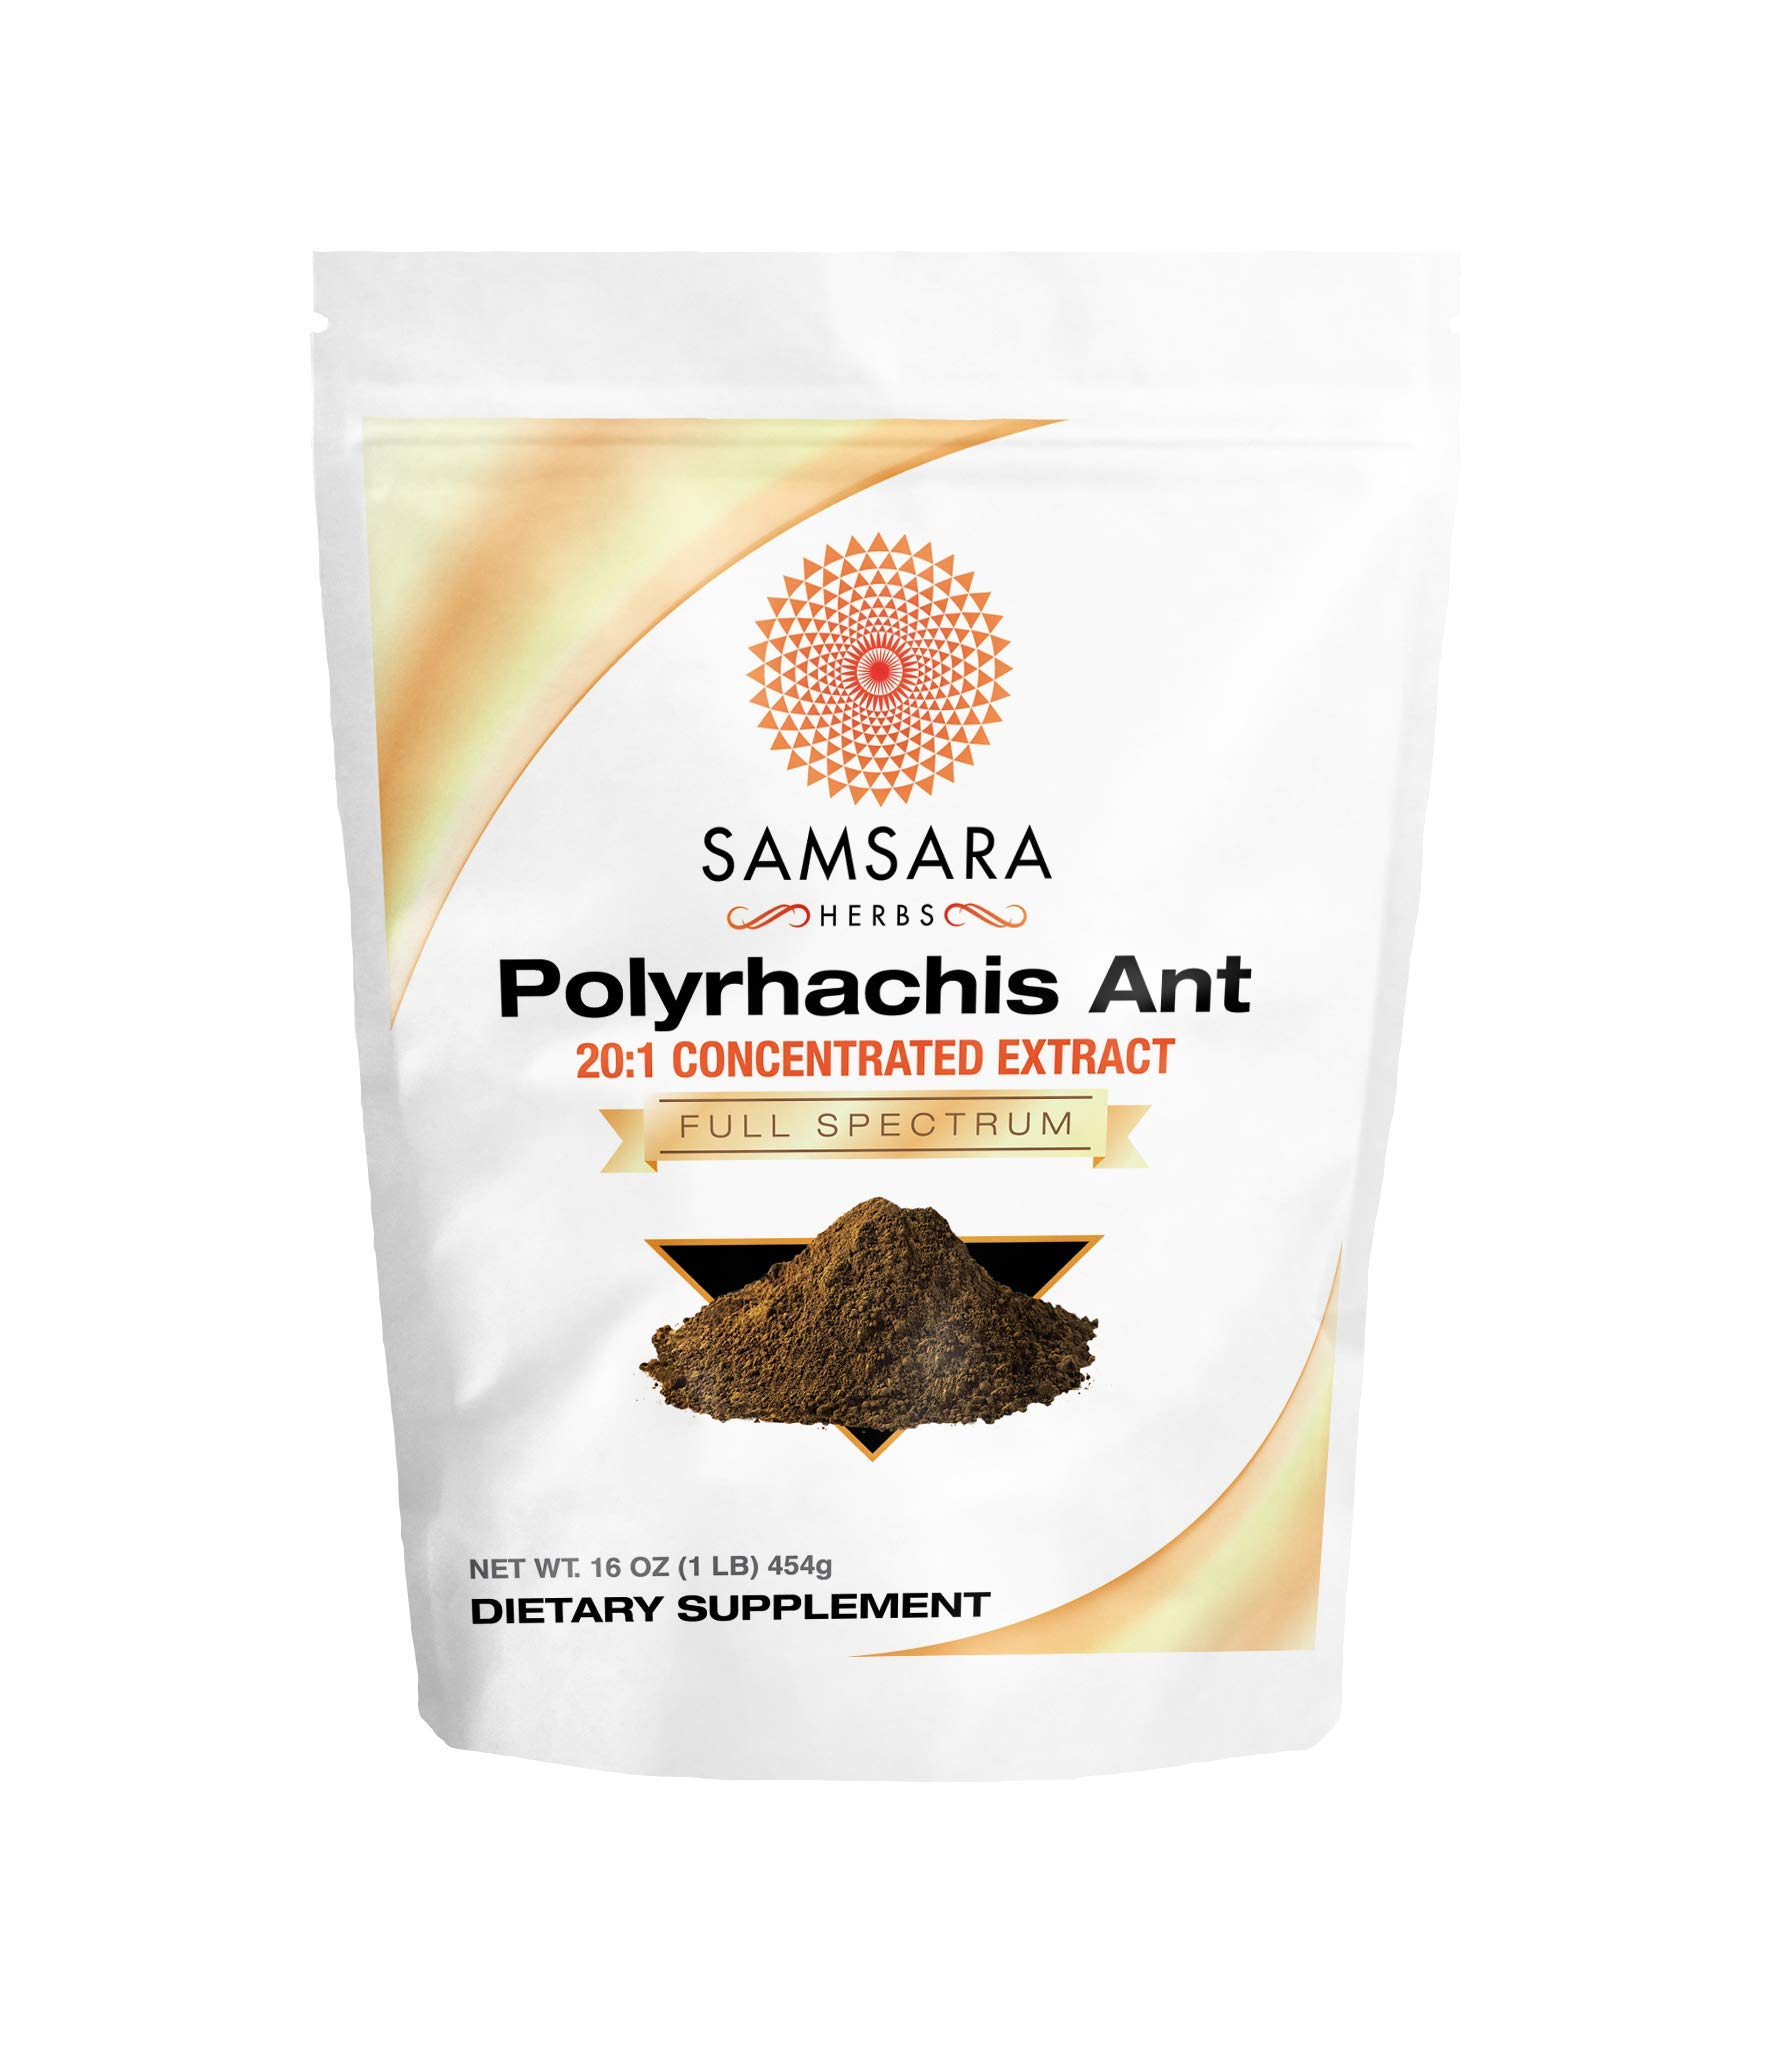 Samsara Herbs Polyrhachis Ant Extract Powder - 20:1 Concentrated Extract (16oz)